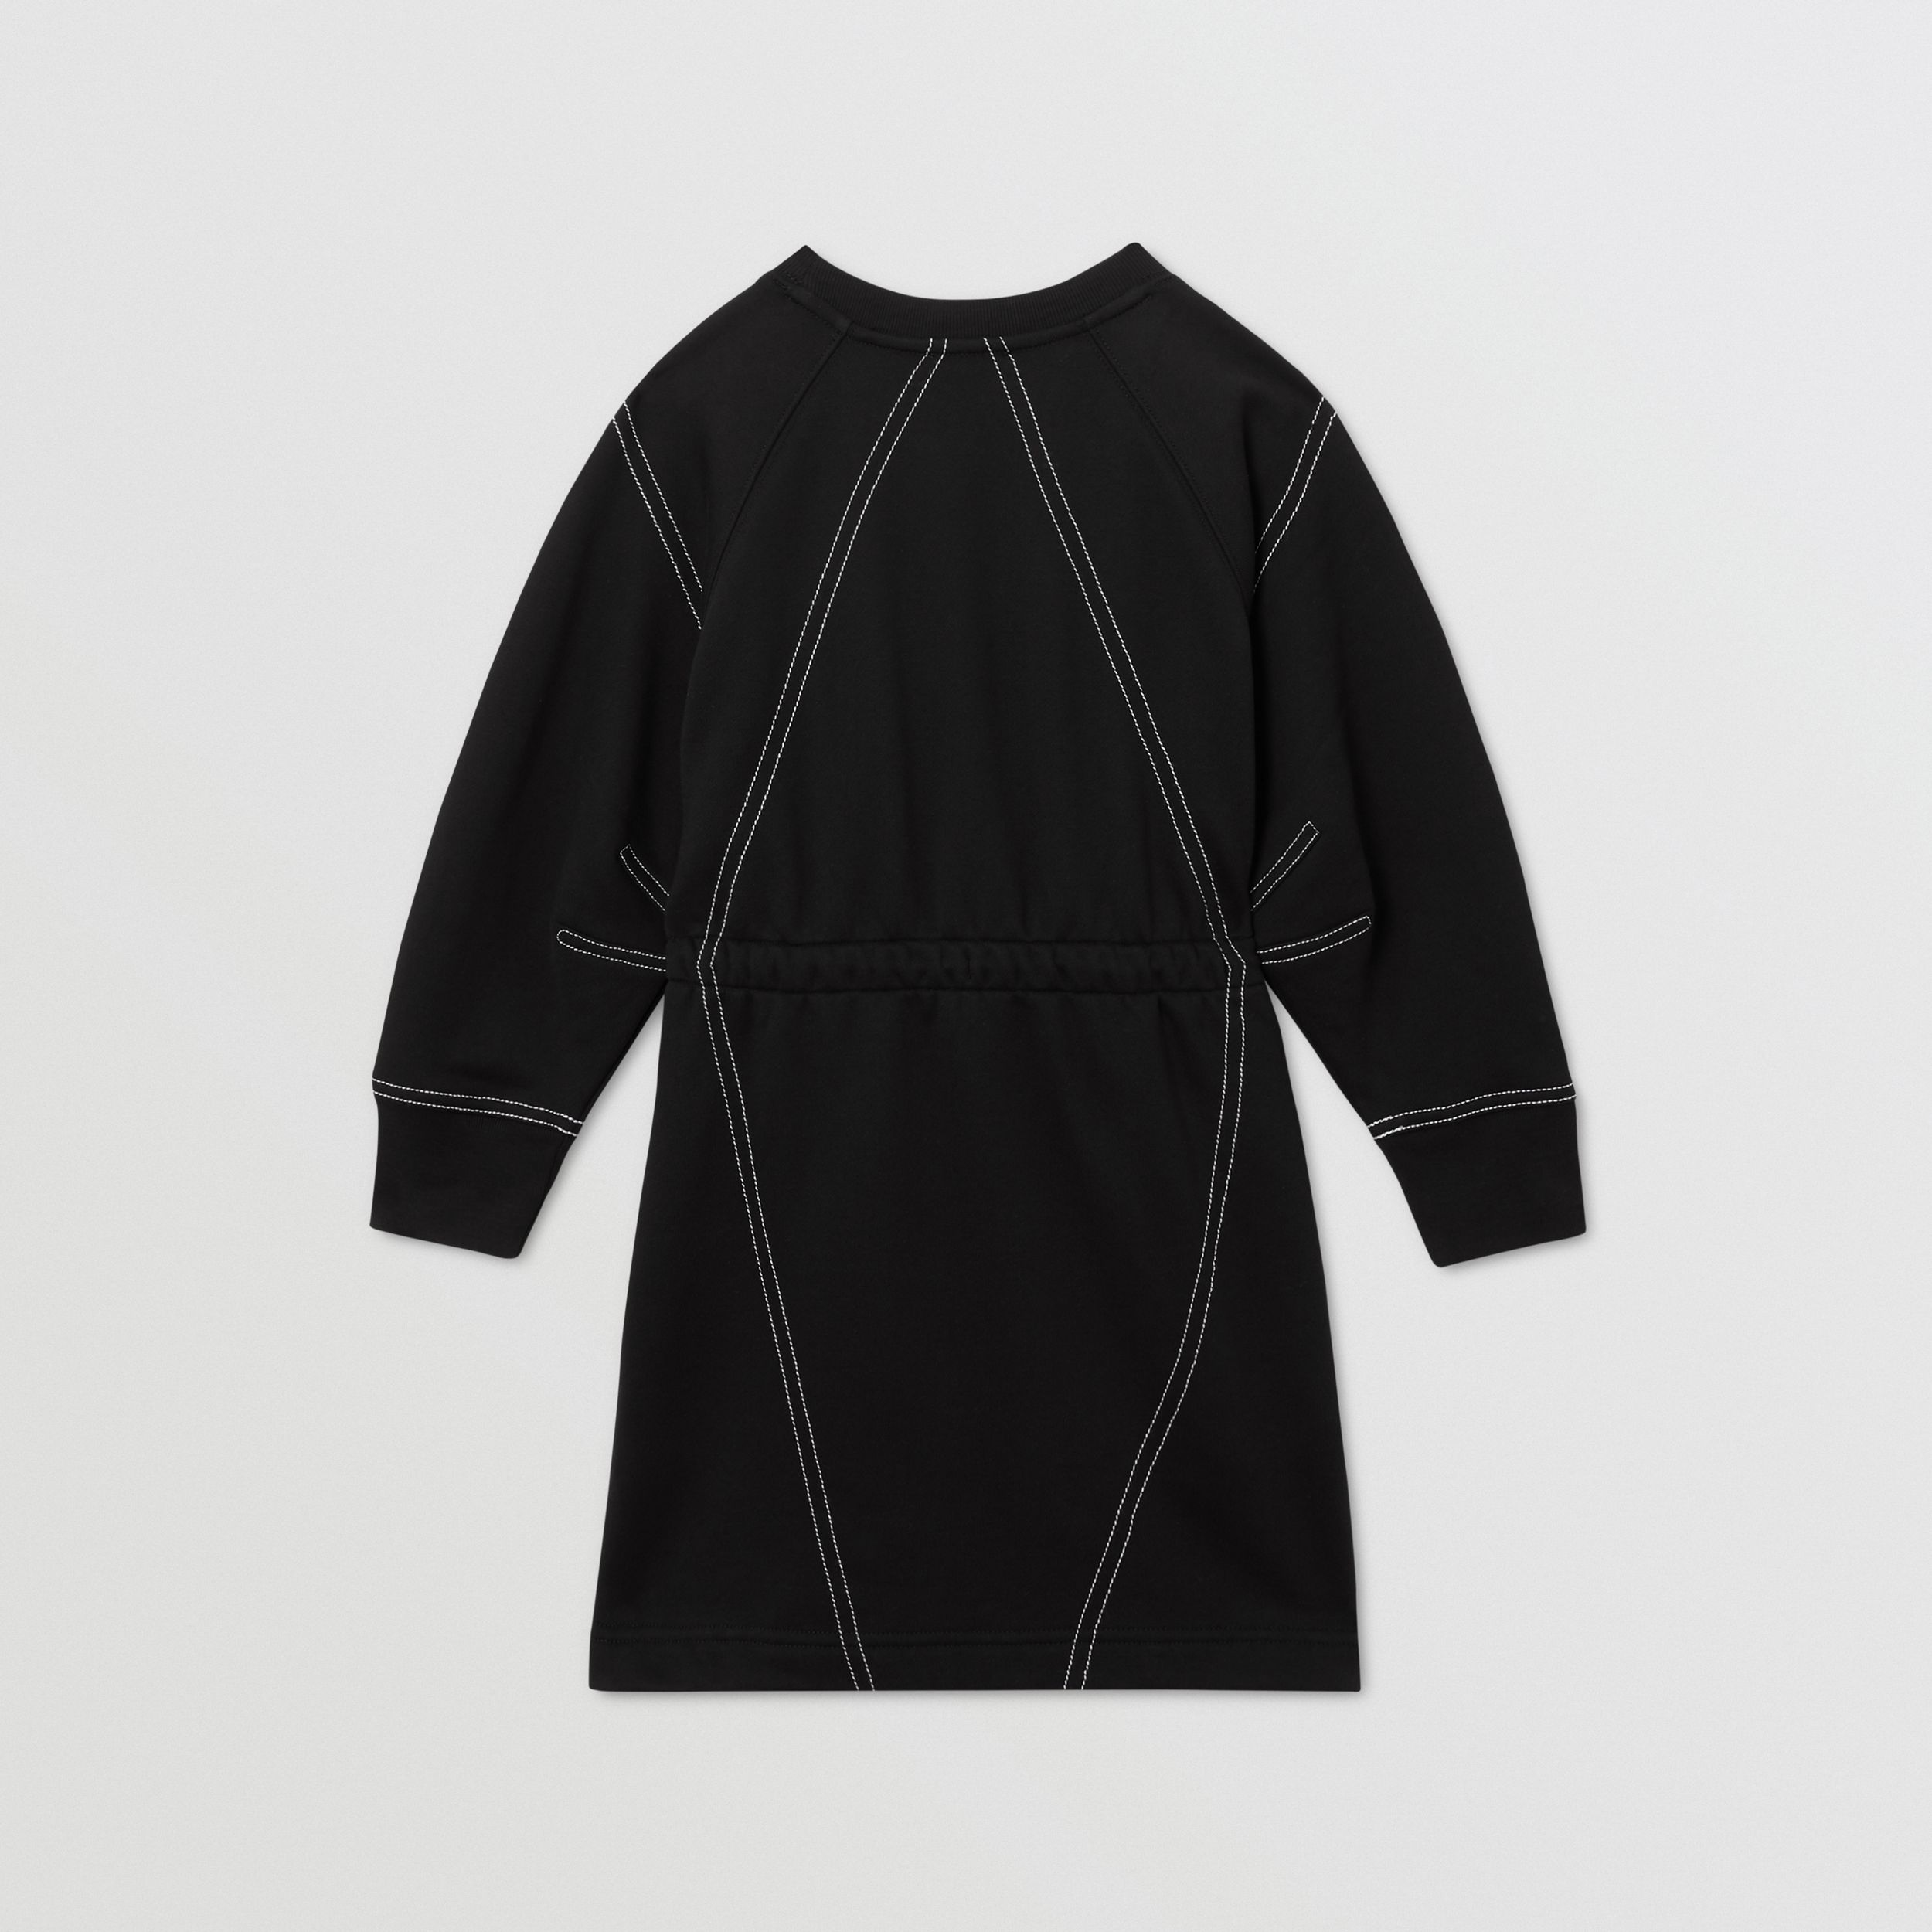 Long-sleeve Logo Print Cotton Dress in Black | Burberry - 4